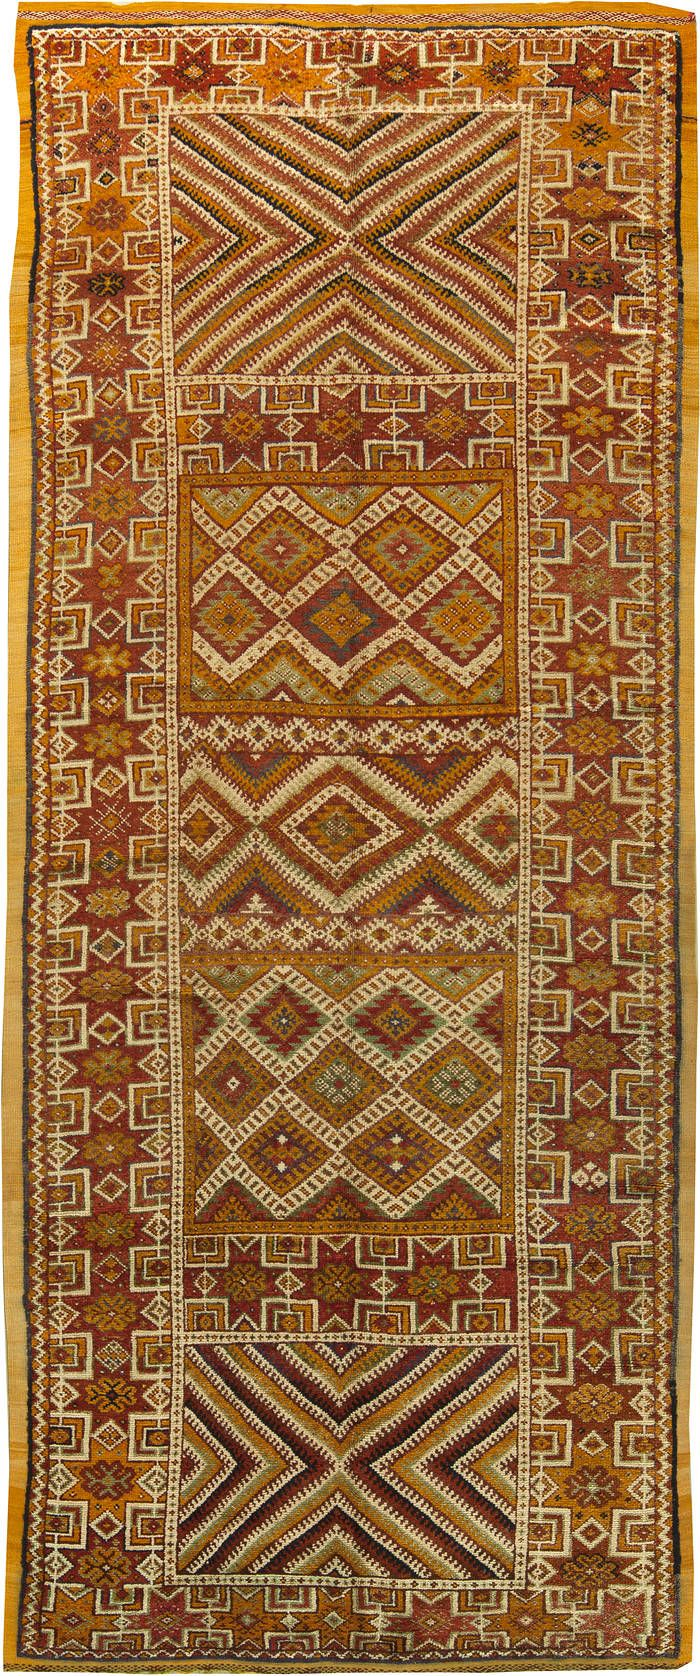 best 25+ vintage rugs ideas on pinterest | carpets, boho rugs and